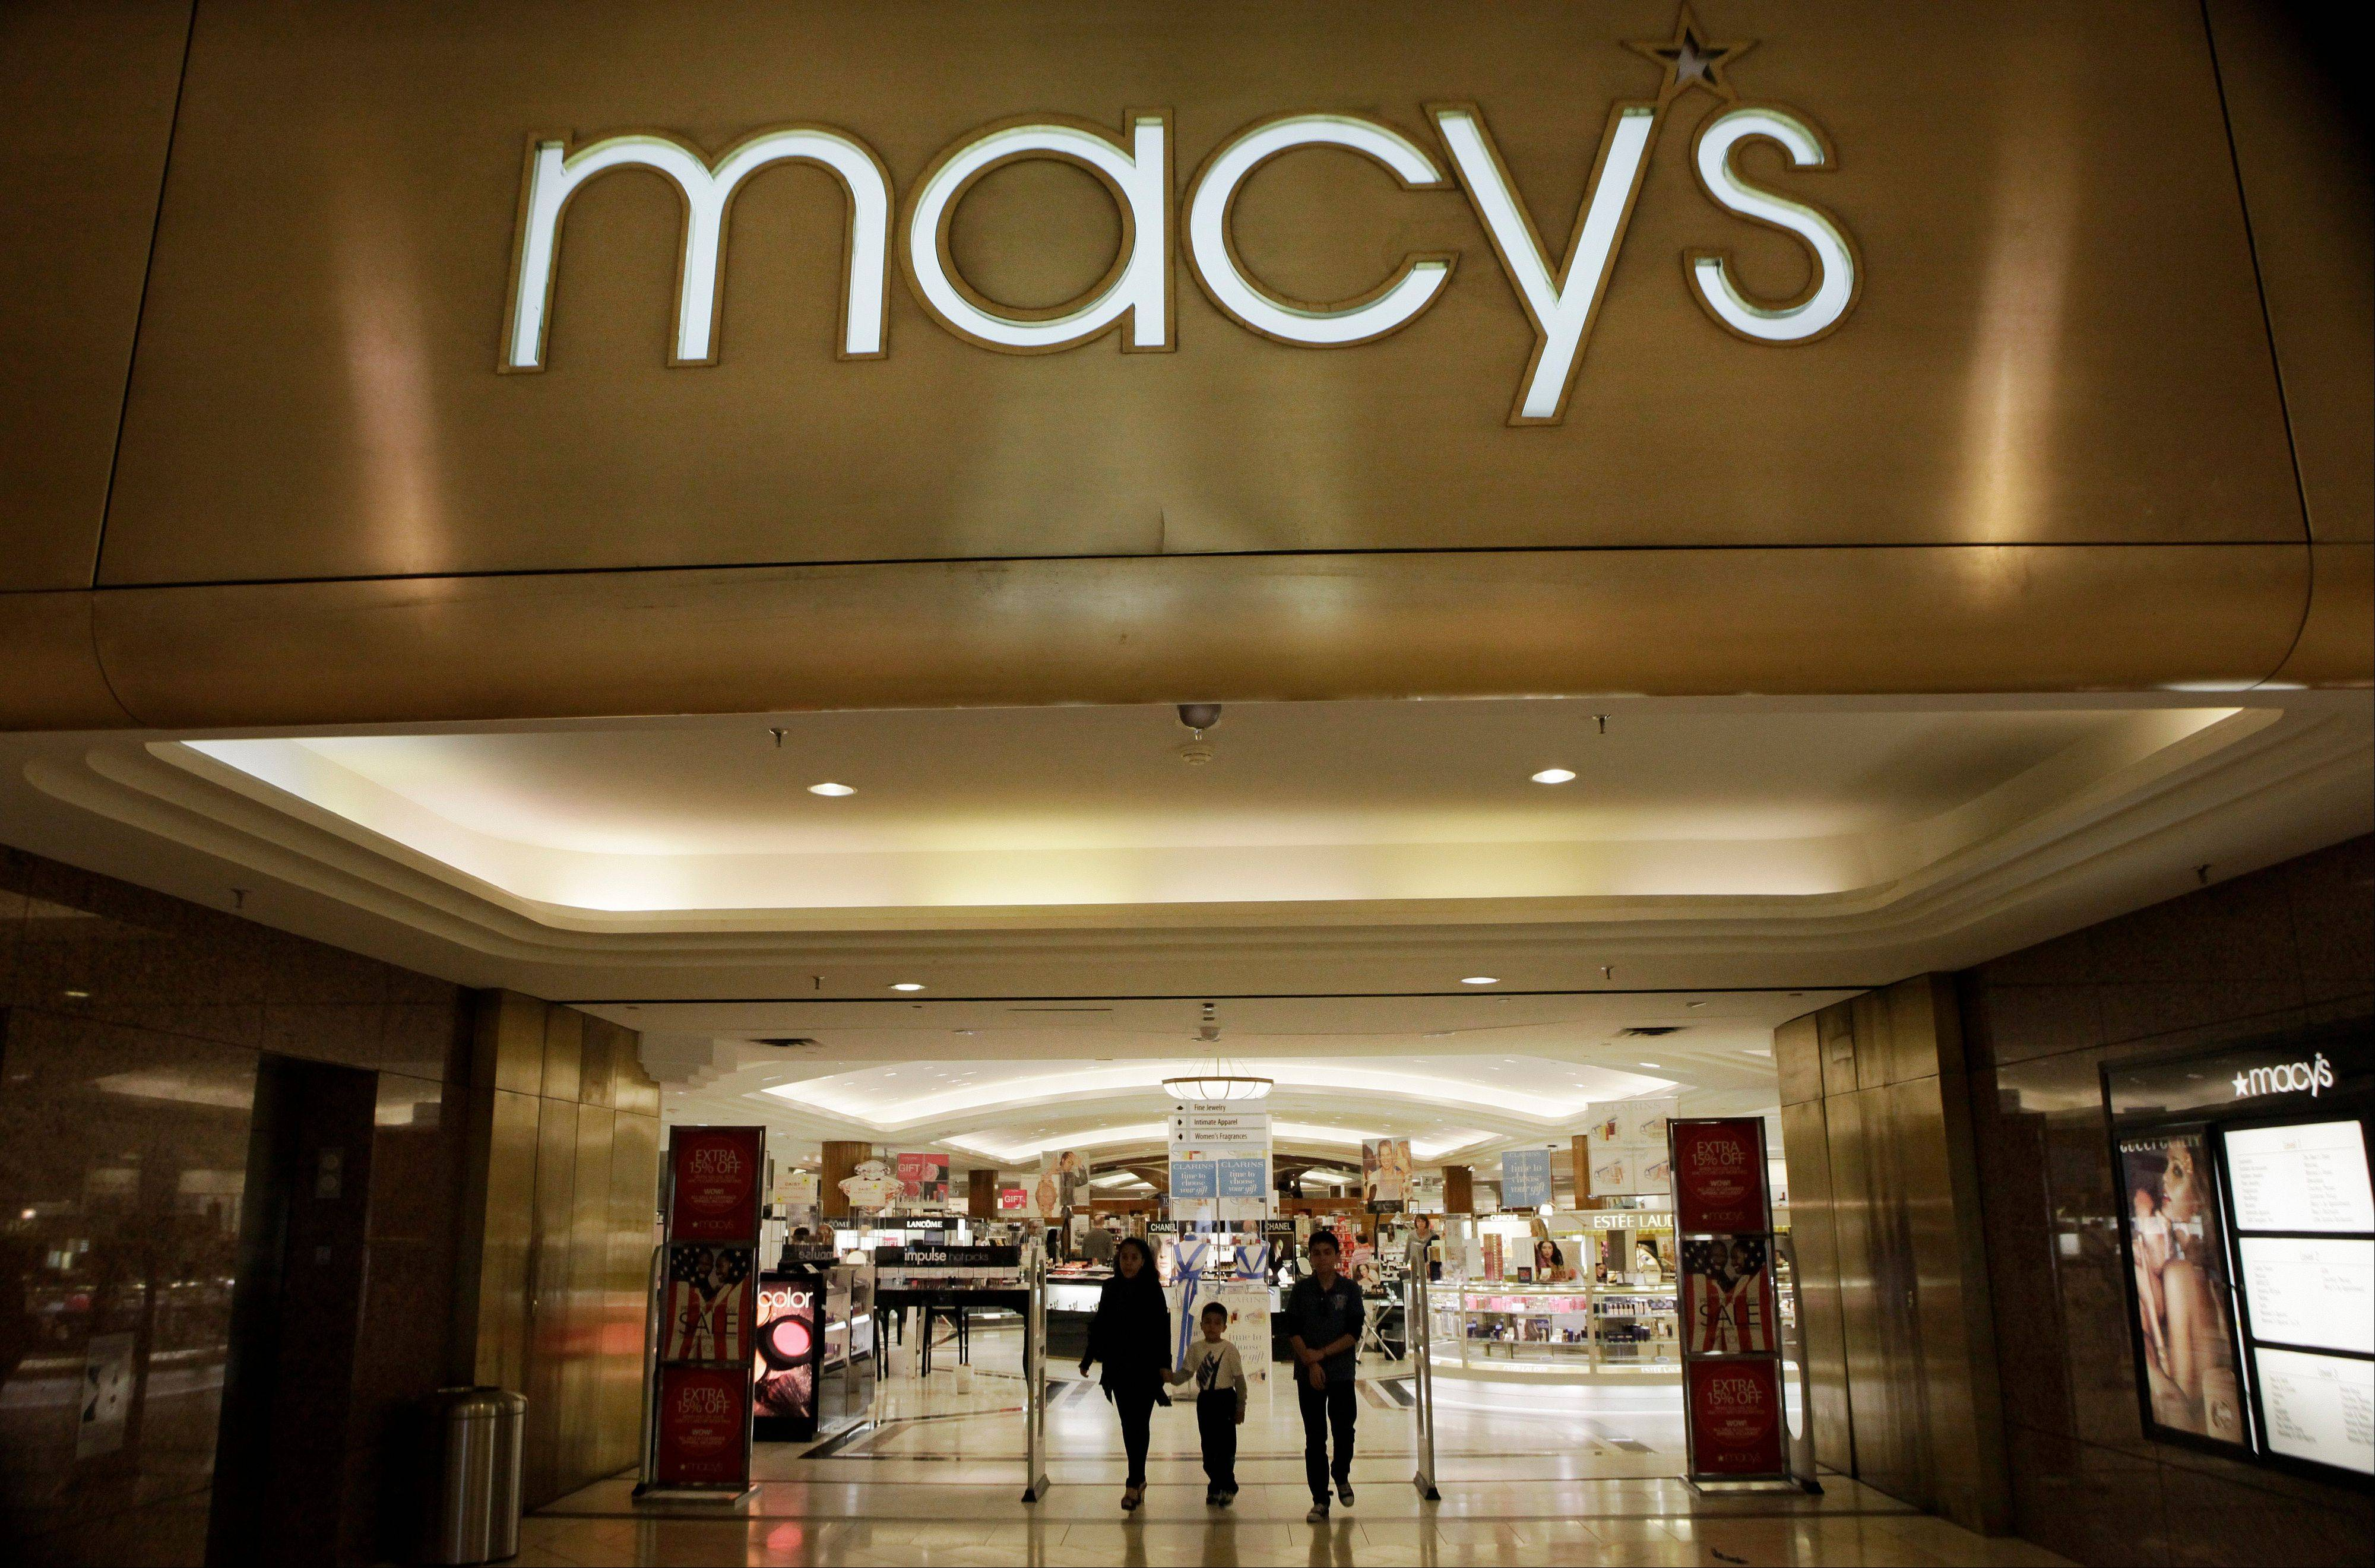 Macy's is reporting Wednesday, Nov. 7, 2012, a 4.3 percent increase in third-quarter net income, helped by the department store owner's efforts to tailor merchandise to local markets and bring in trendy exclusive brands.